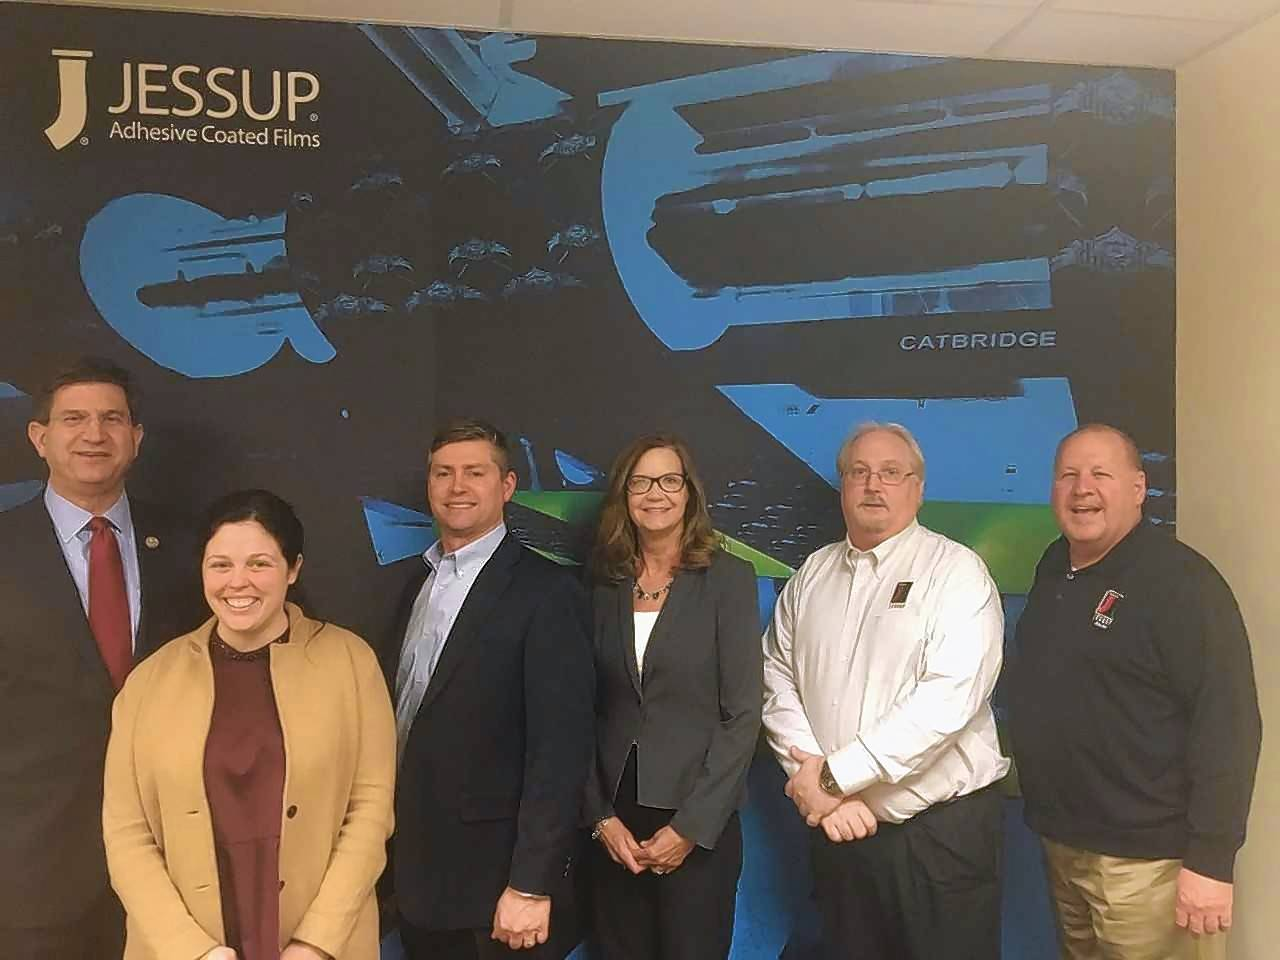 Congressman Brad Schneider; Magen Ryan, district director at the office of Congressman Schneider; and Jessup employees Rick Brizek, vice president operations; Kelly Jorgenson, human resources manager; Wesley Burgeson, director of finanace; Al Carlson, director of government sales.